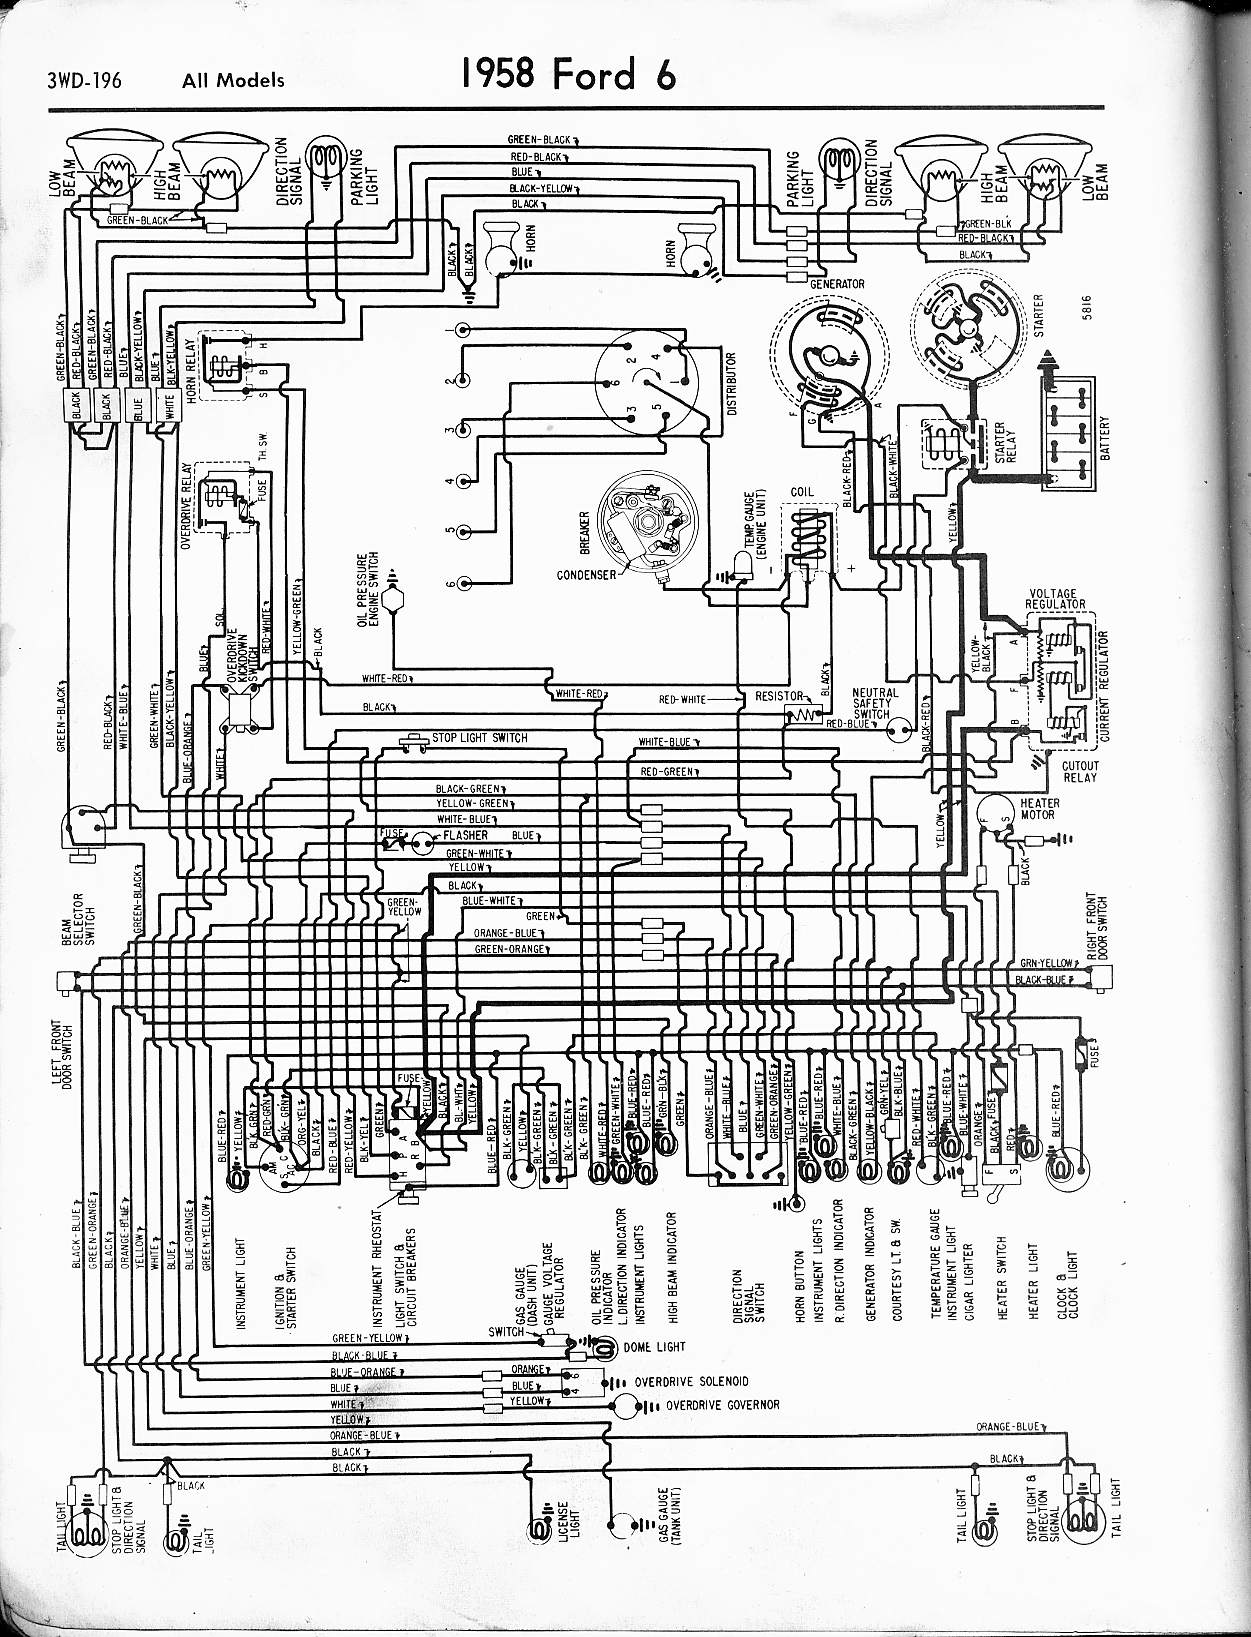 MWire5765 196 57 65 ford wiring diagrams ford wiring diagrams at bayanpartner.co